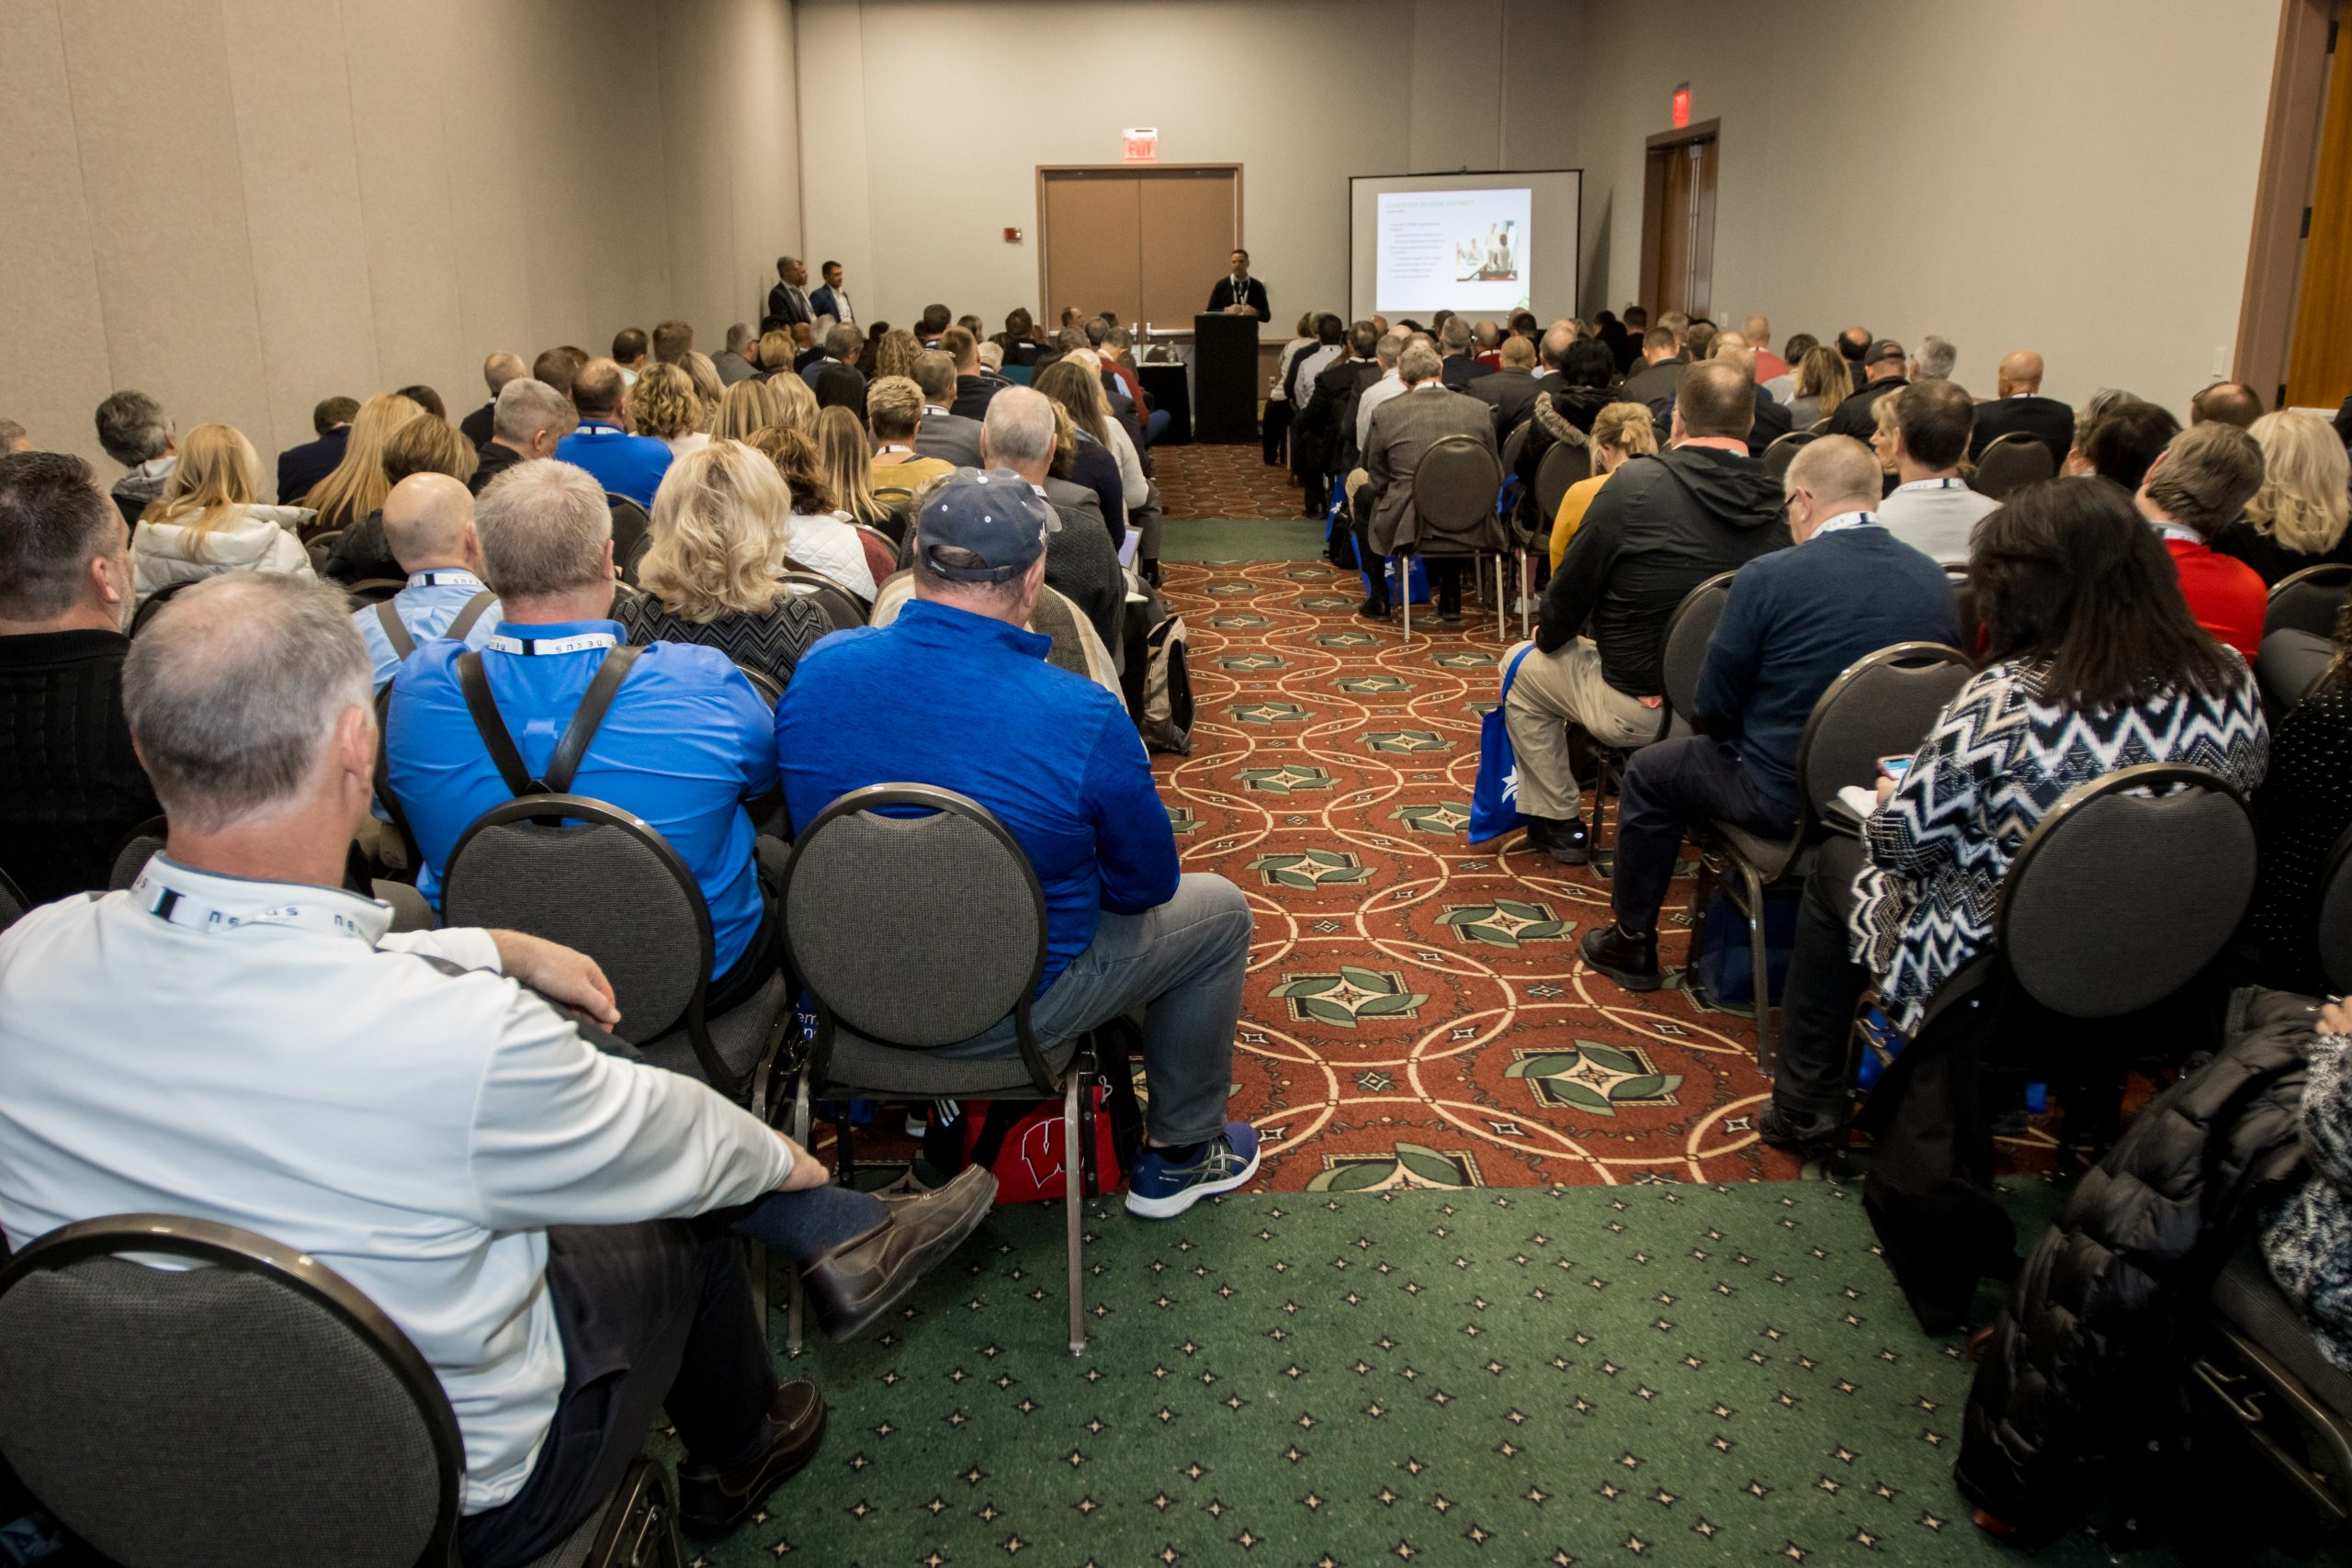 State Education Convention attendees listen to a breakout session.